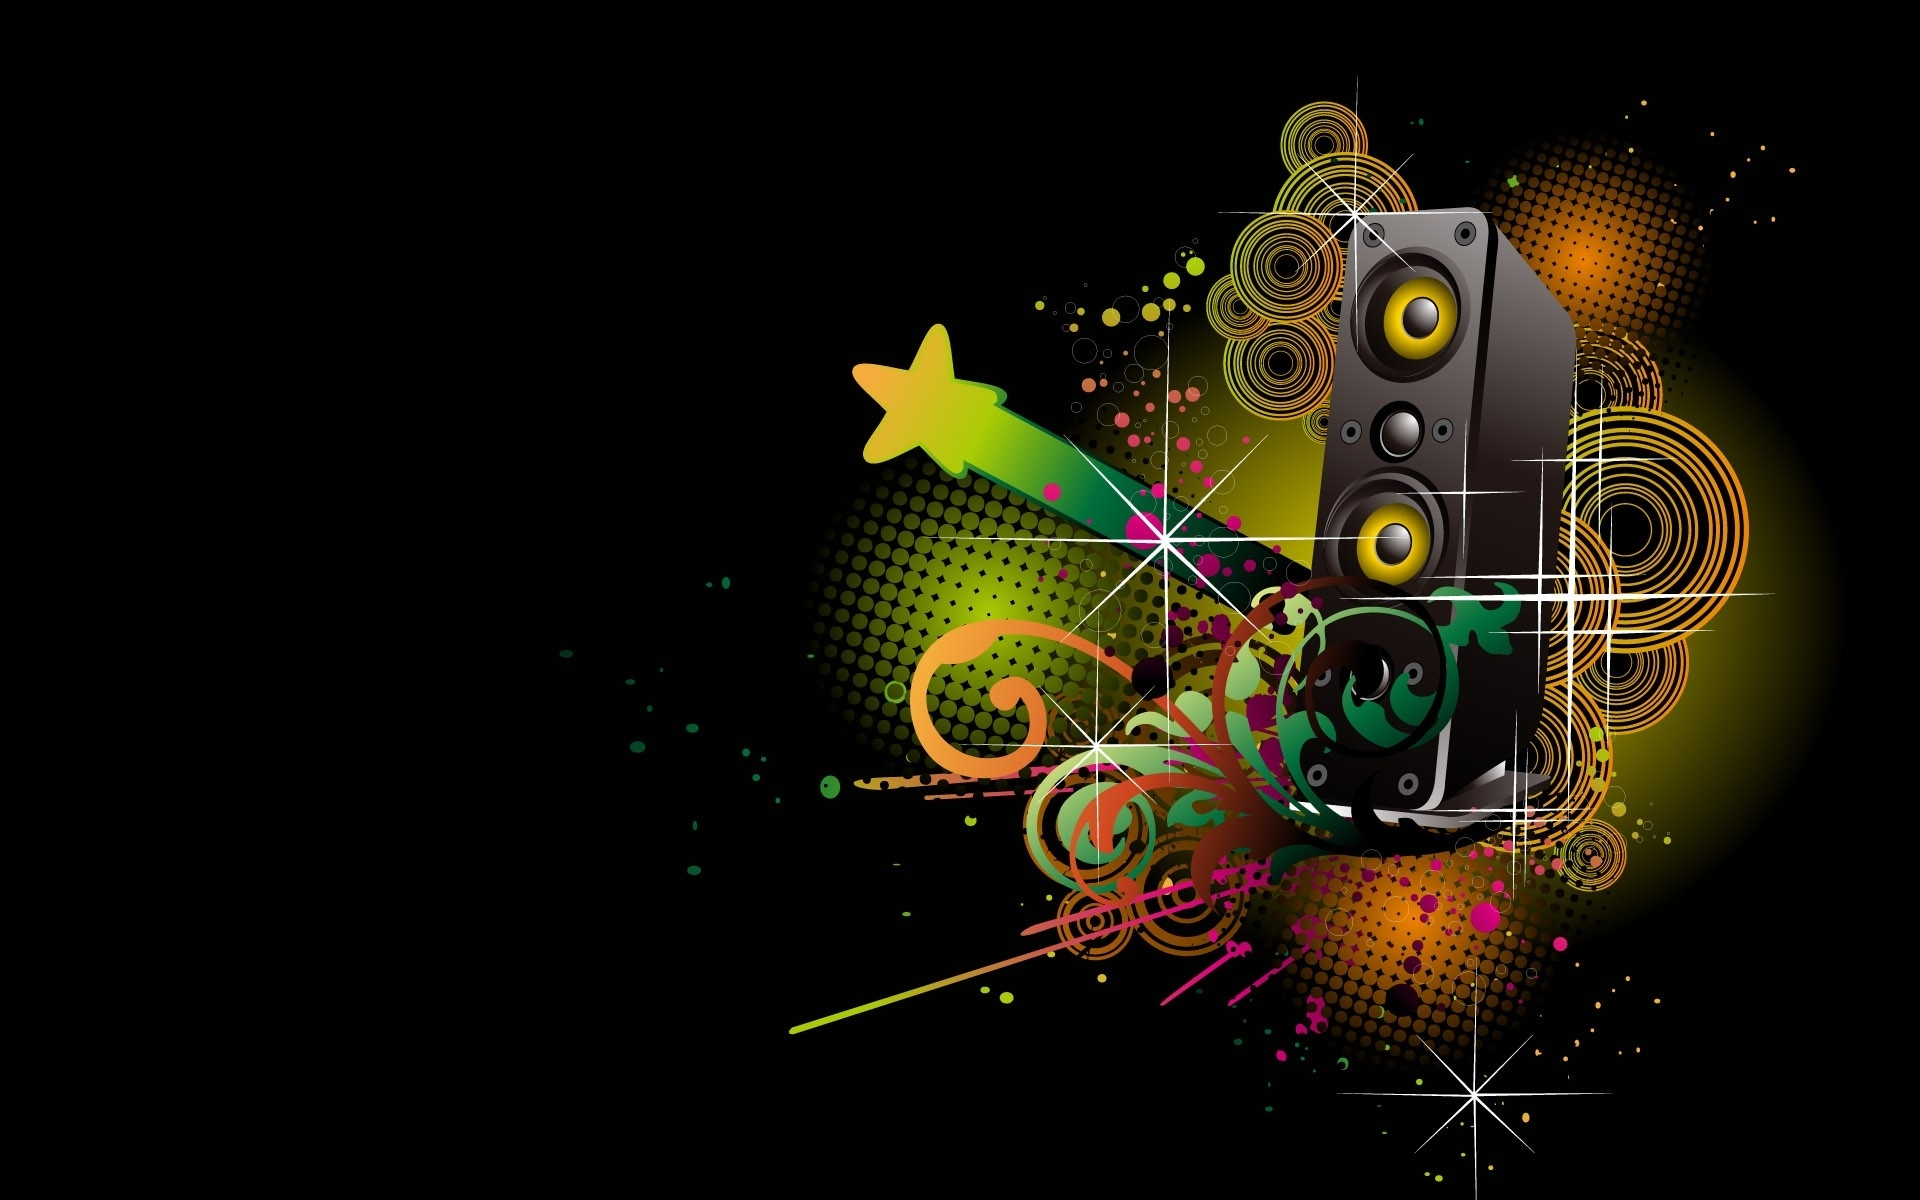 abstract-music-wallpapers-hd - wallpaper.wiki